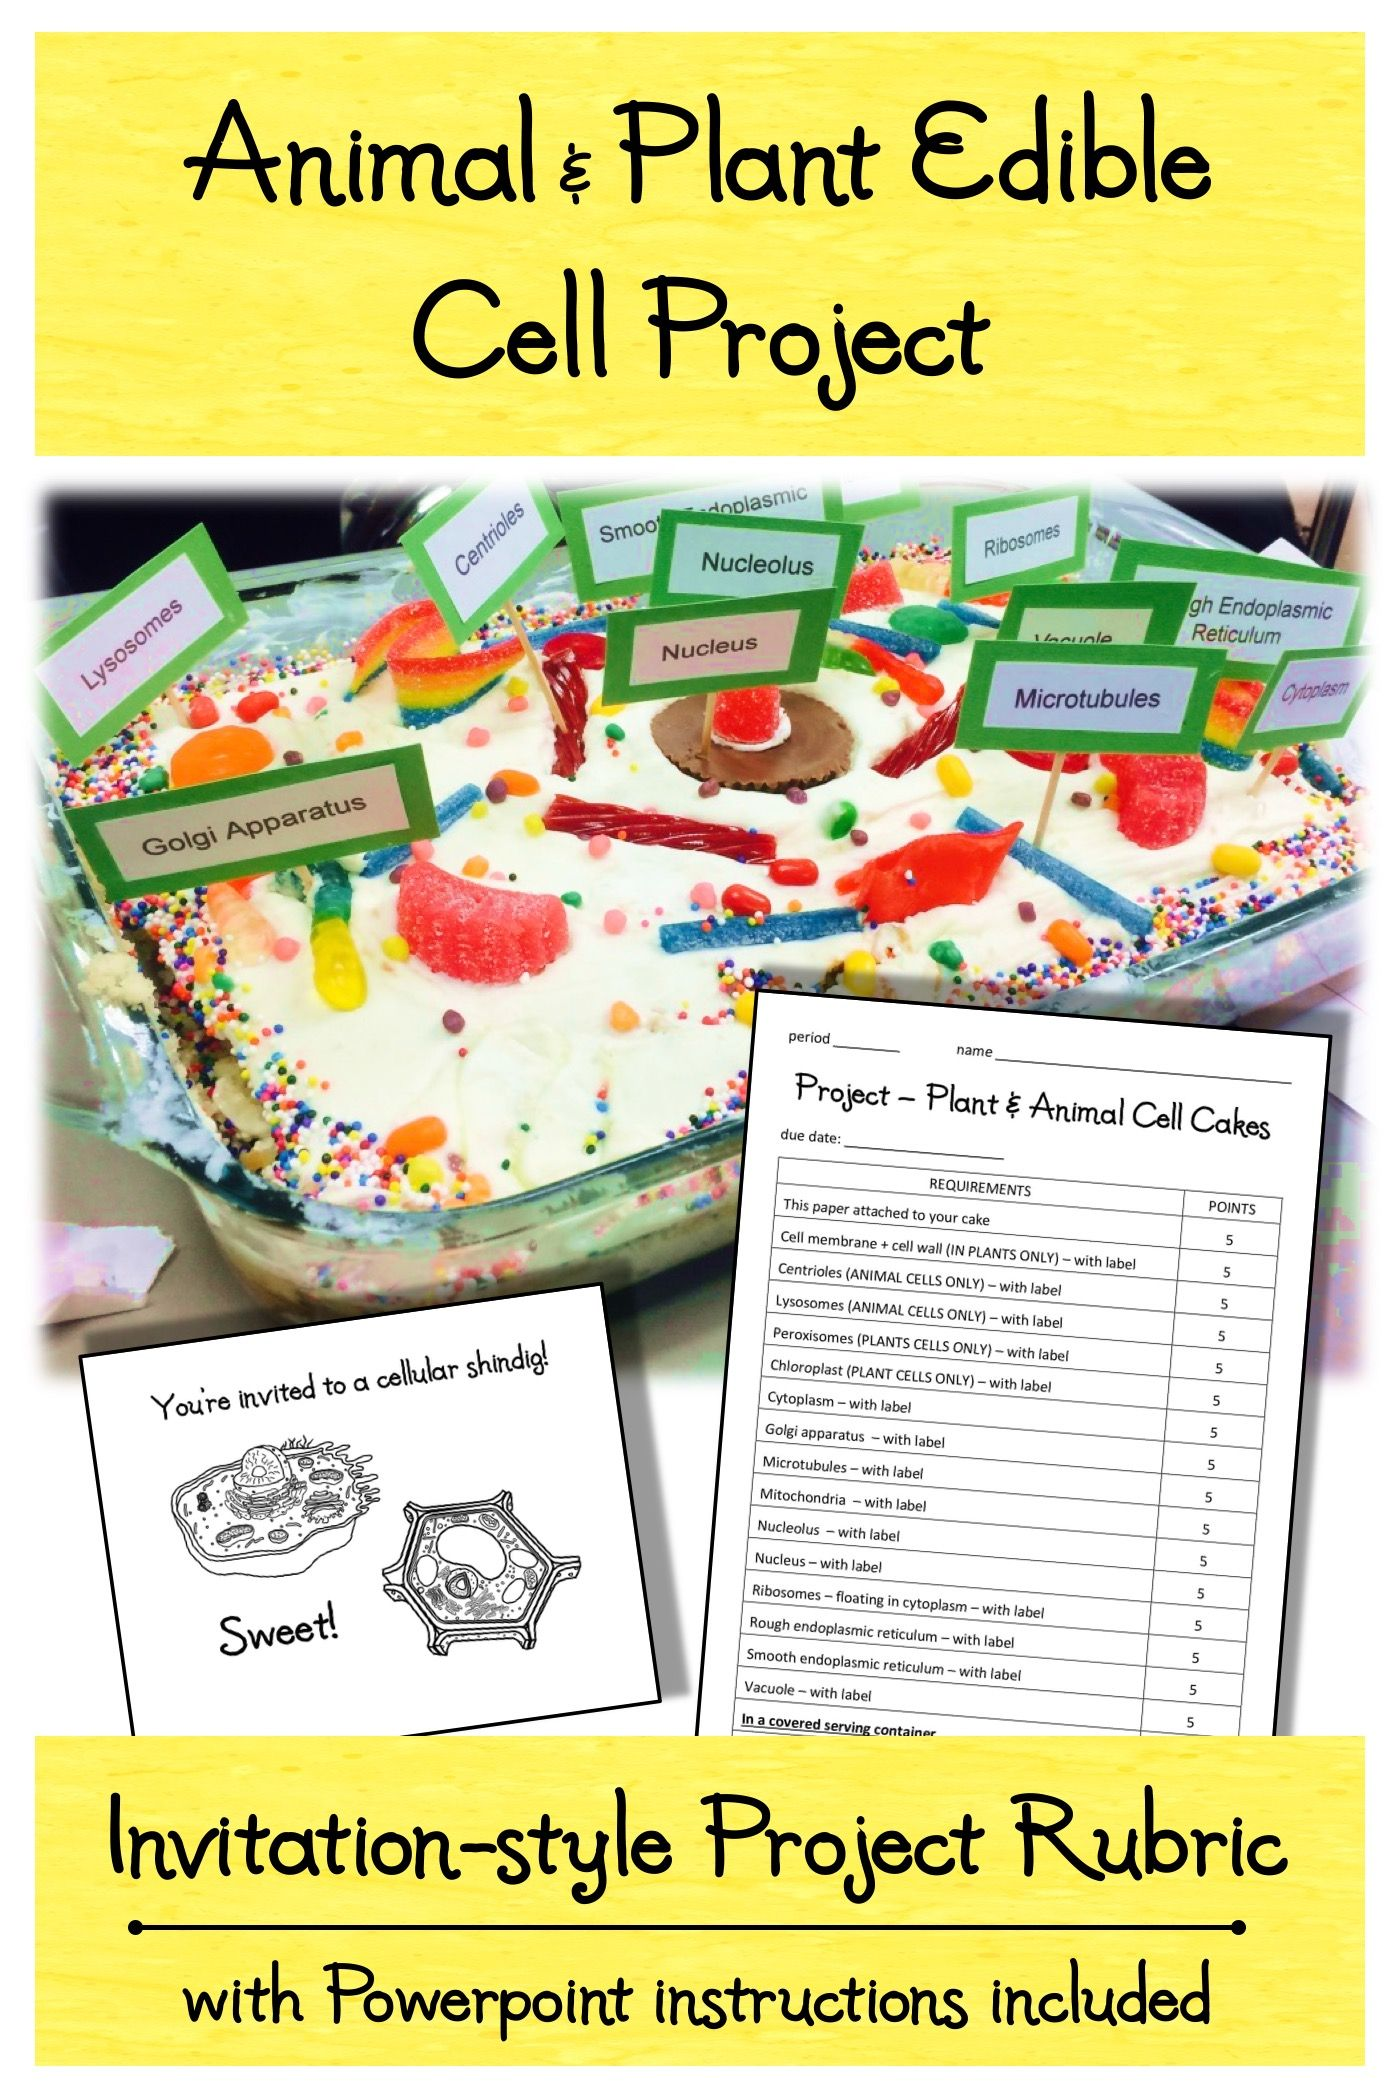 Animal & Plant Edible Cell Model Cake Project Rubric